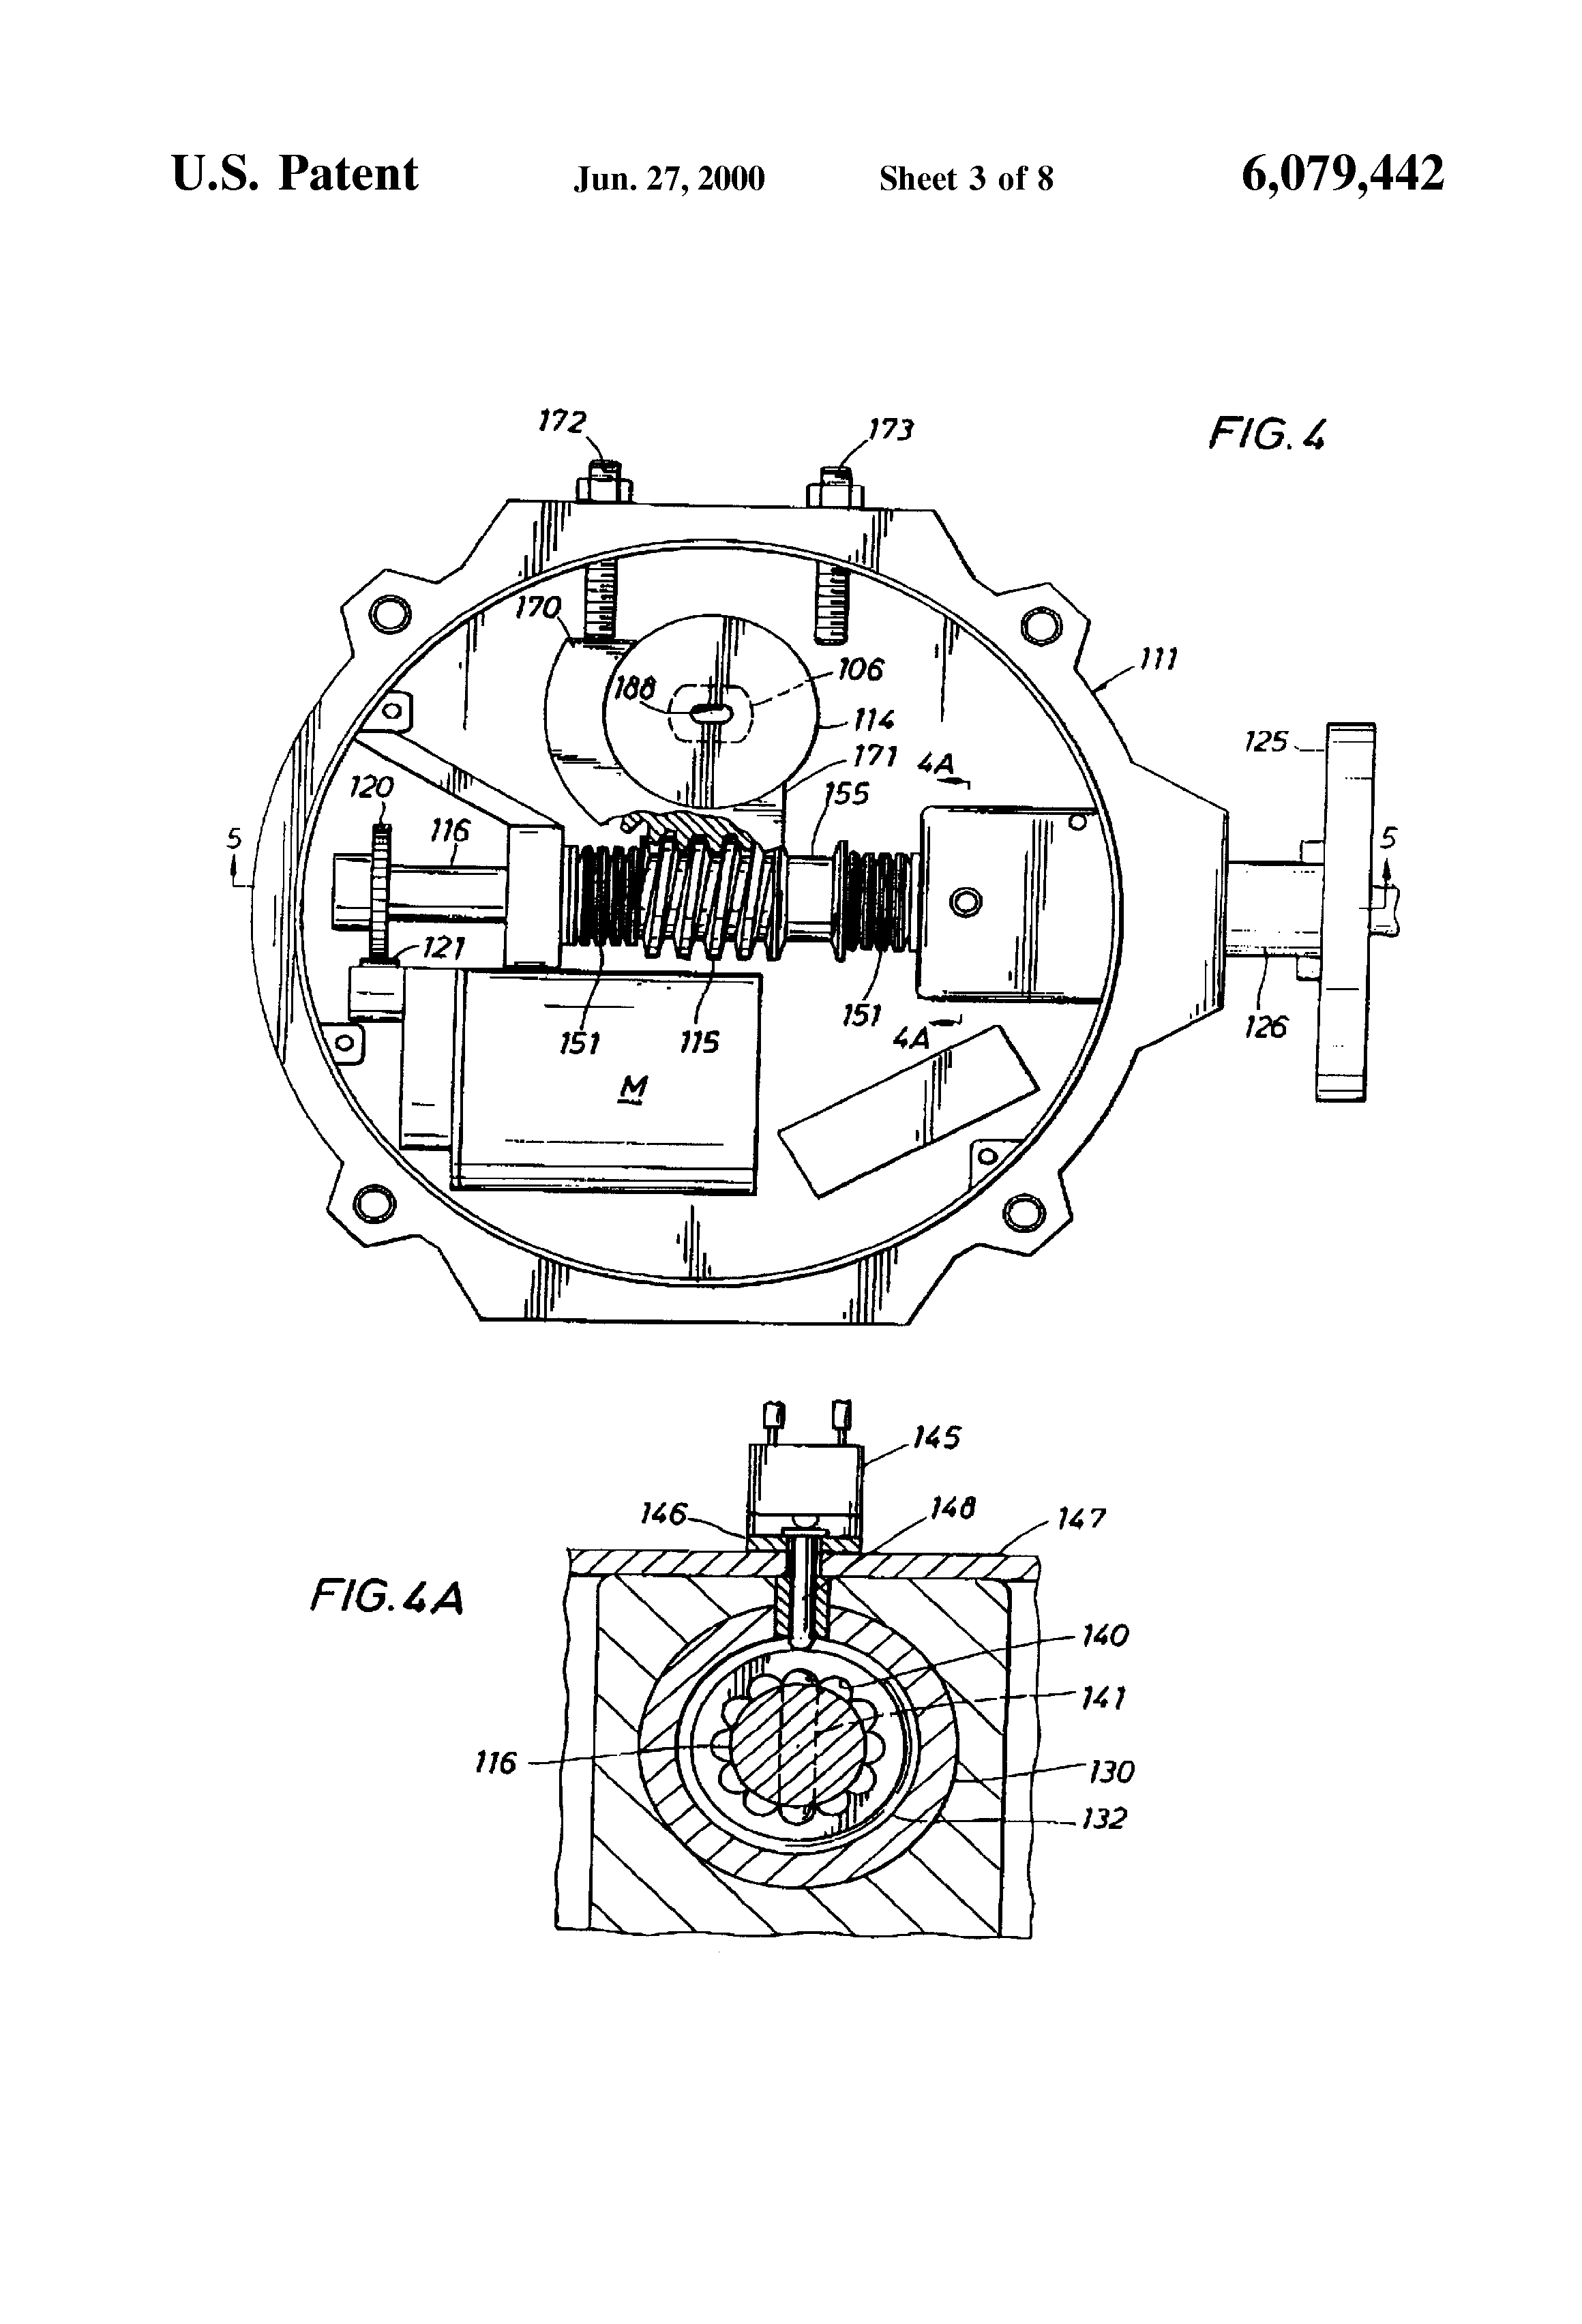 US6079442 3 rotork wiring diagram rotork drawings \u2022 wiring diagrams j squared co rotork actuator wiring diagrams at soozxer.org